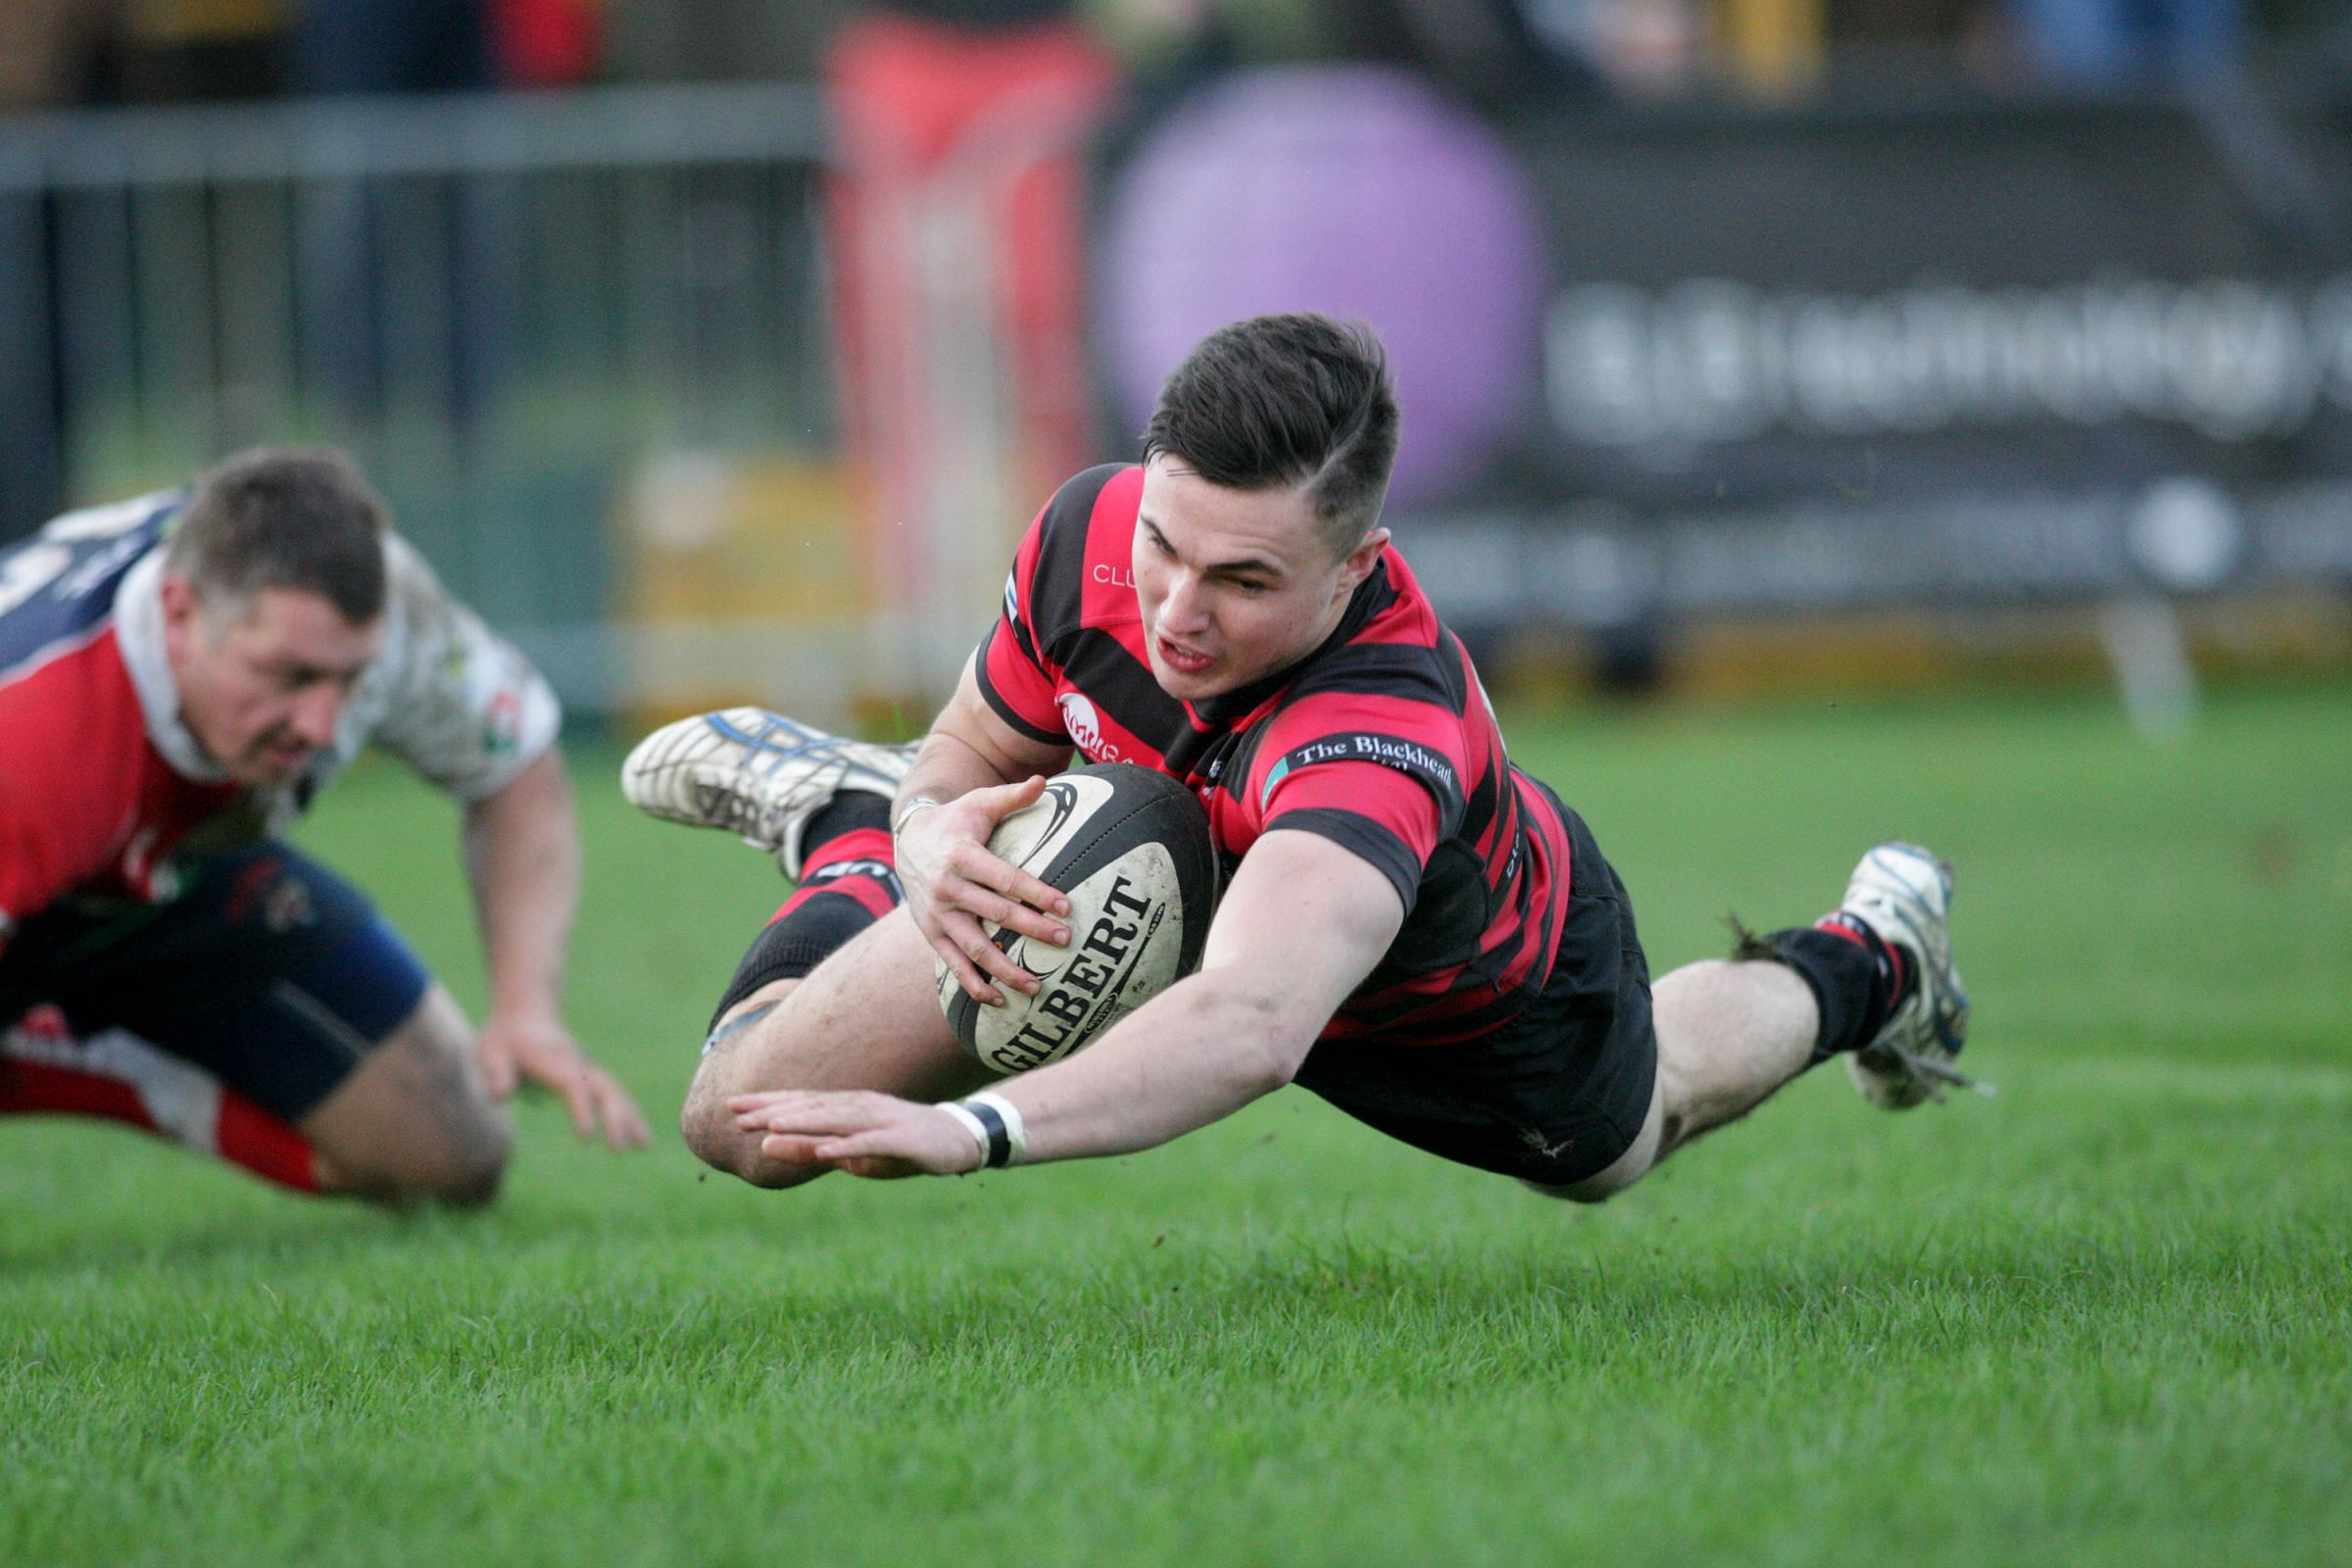 Ben Summers scoring in Blackheath colours earlier in the season.  Photo: Helen Watson